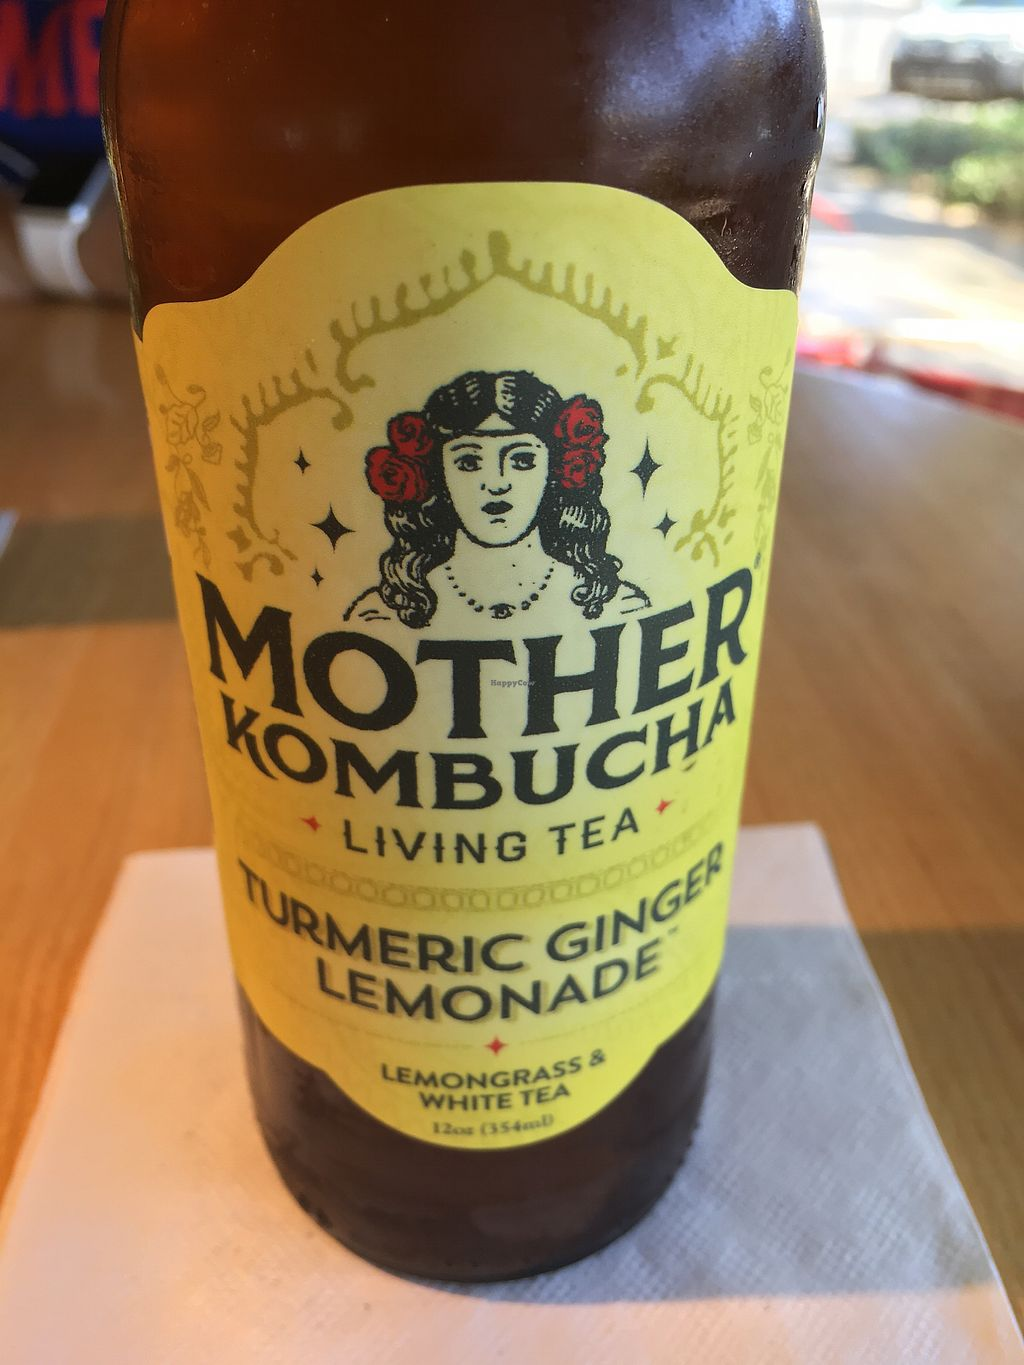 """Photo of The Cider Press Cafe   by <a href=""""/members/profile/KWdaddio"""">KWdaddio</a> <br/>They serve Mother Kombucha brewed locally  <br/> September 20, 2017  - <a href='/contact/abuse/image/62213/306610'>Report</a>"""